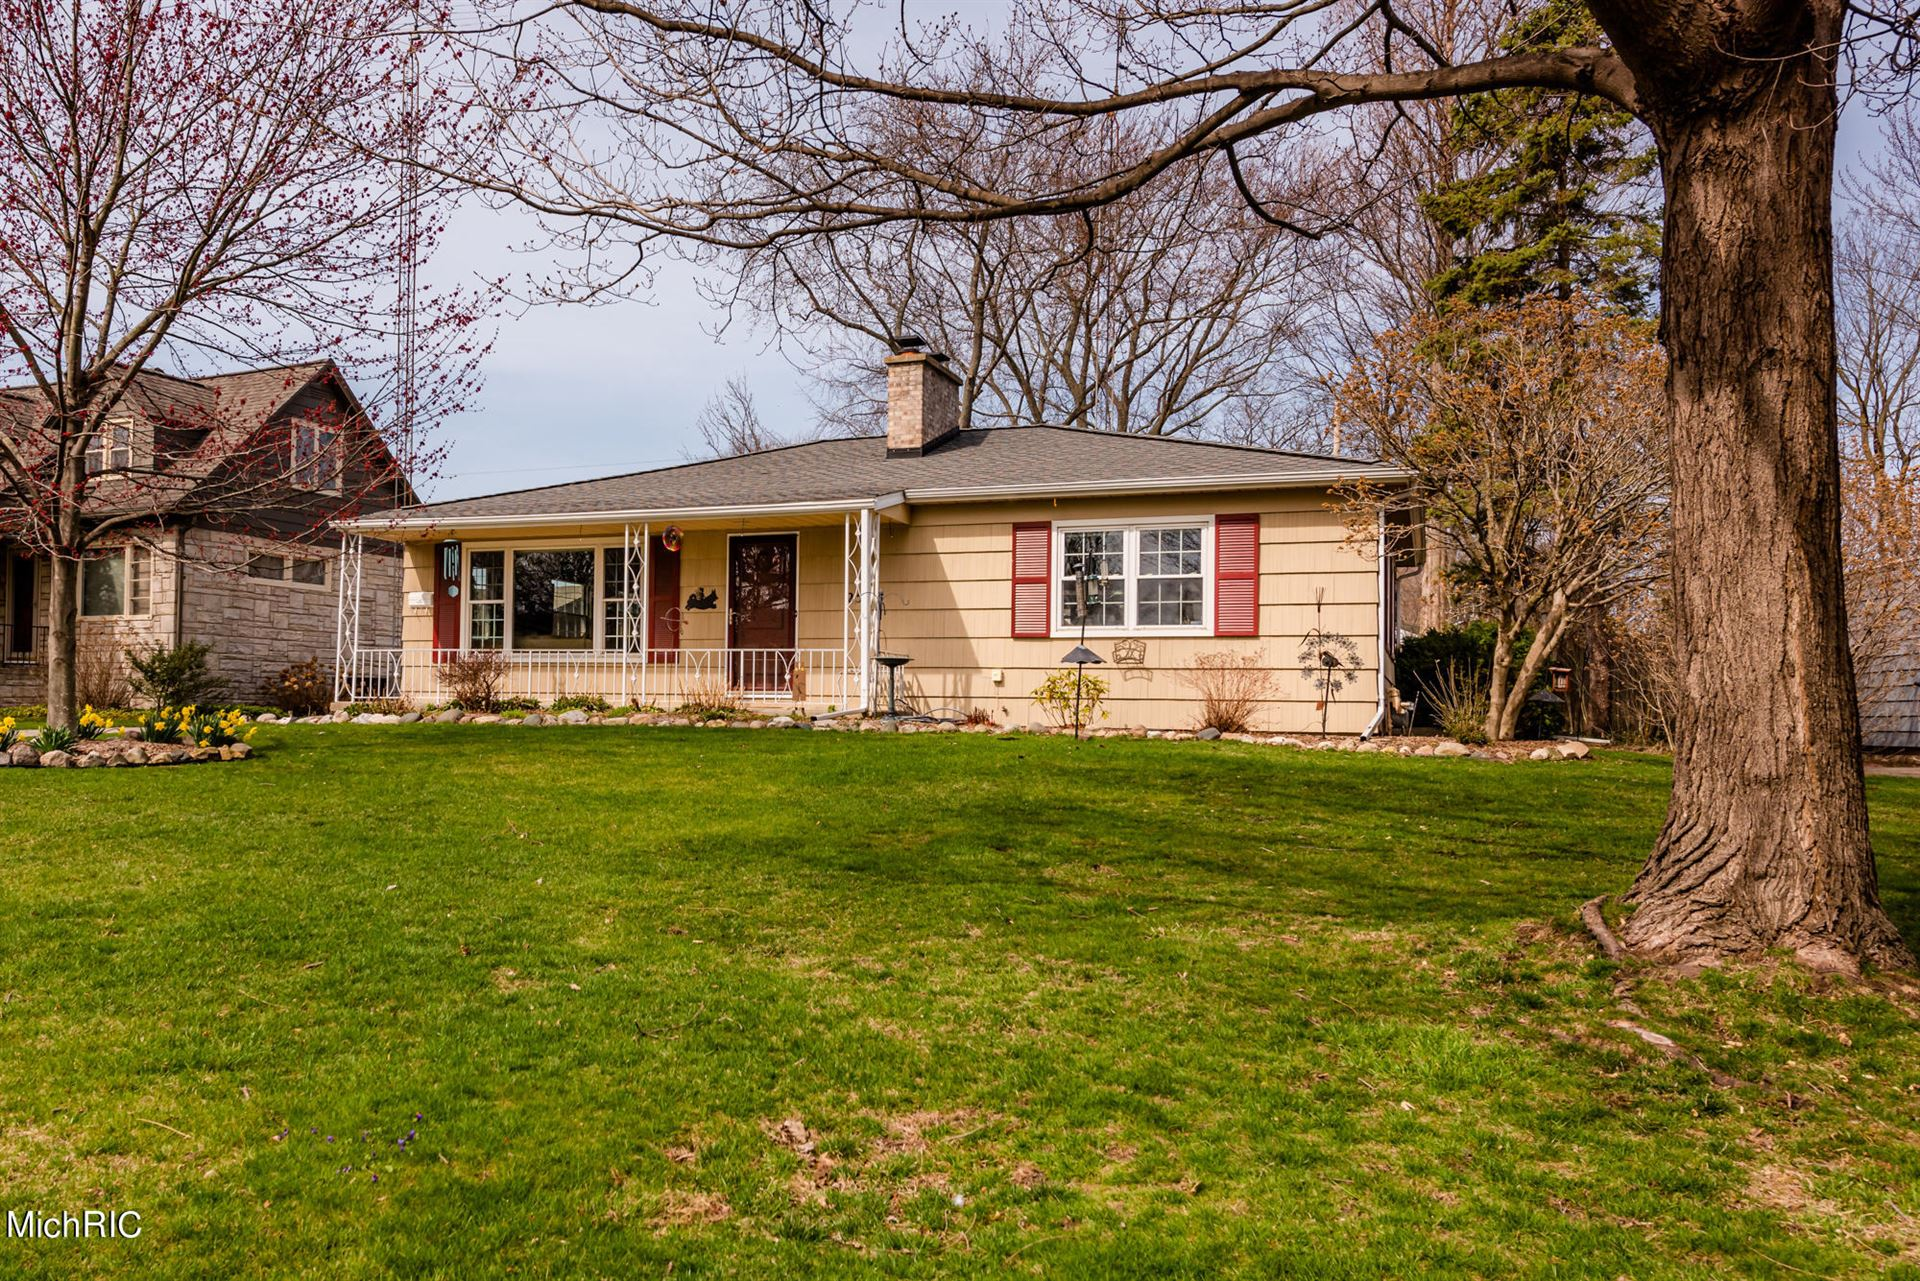 2508 Riverwood Terrace, Saint Joseph, MI 49085 - MLS#: 21010614